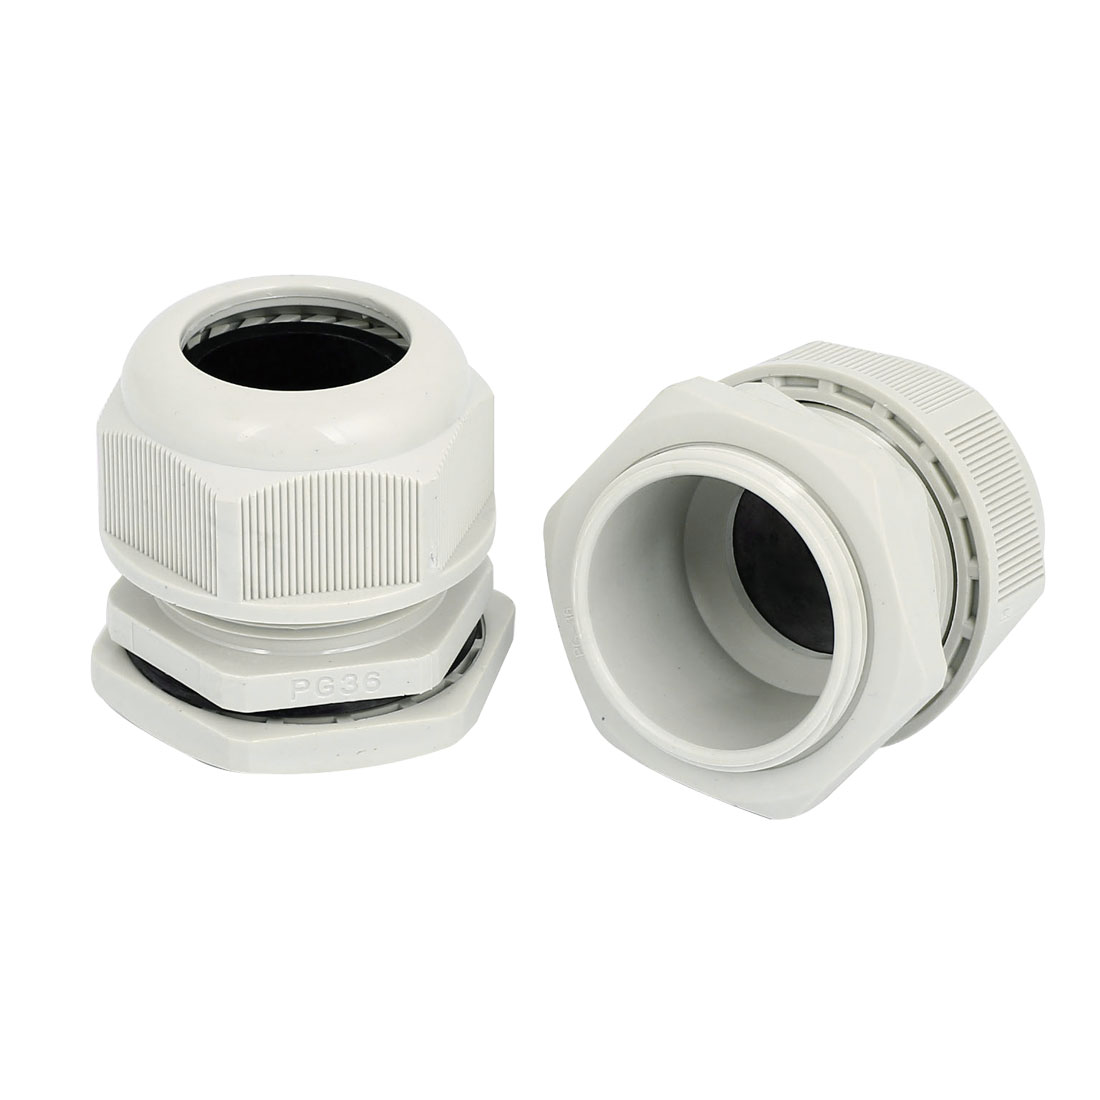 PG36 22-32mm Range Waterproof Cable Gland Cord Fixing Connect Connector Locknut 2pcs White